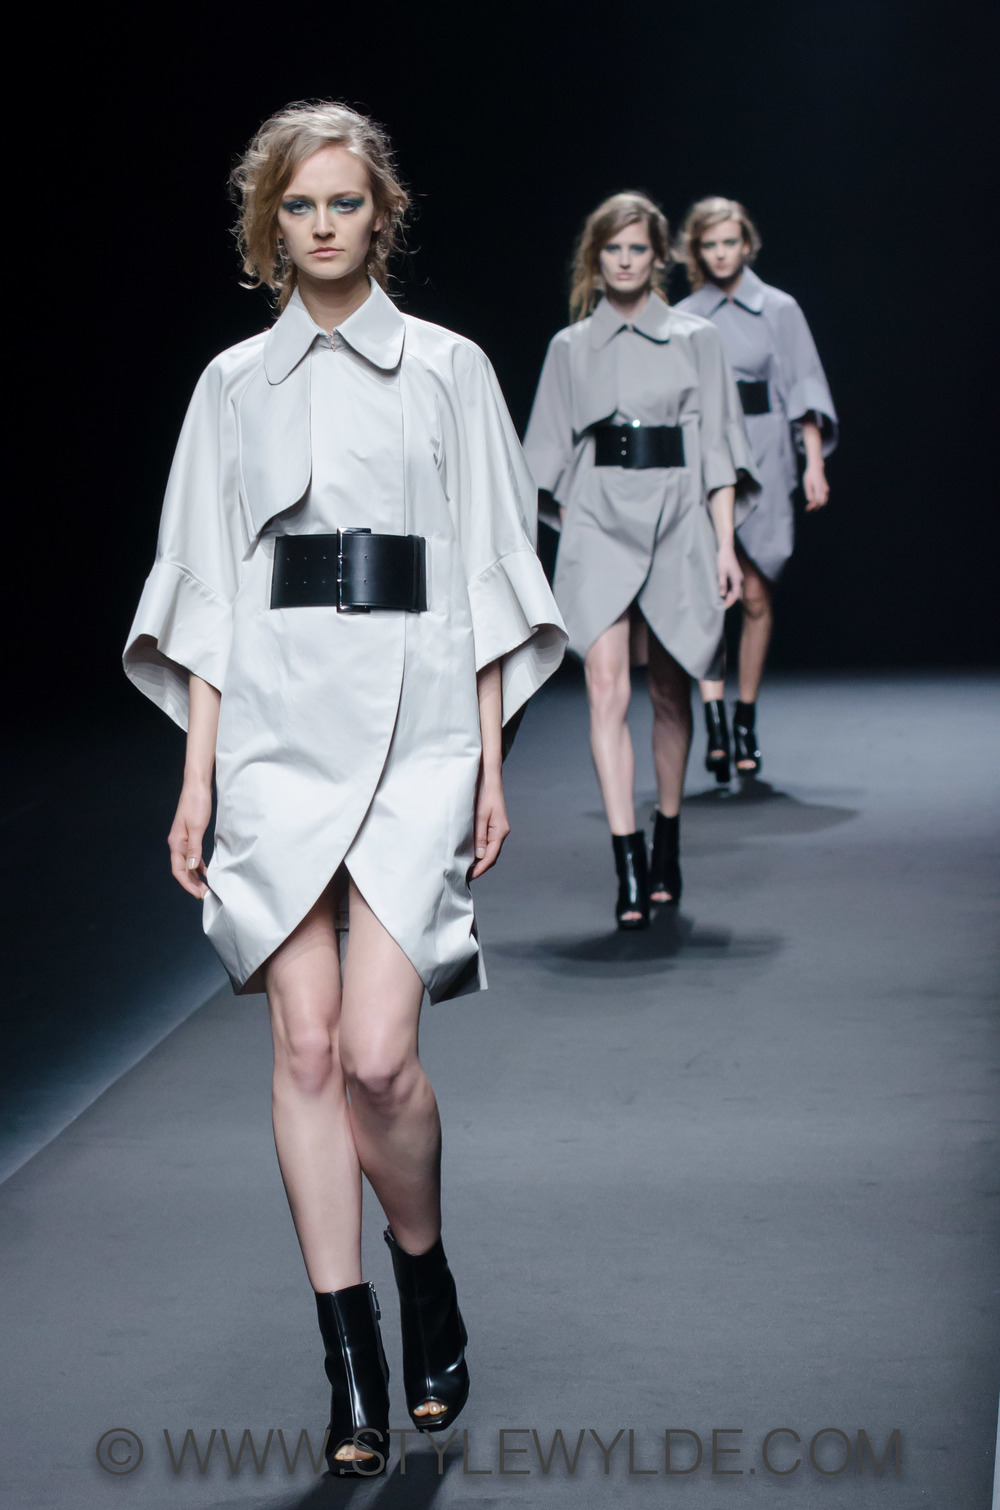 stylewylde_ADF_AW14_edited (21 of 22).jpg